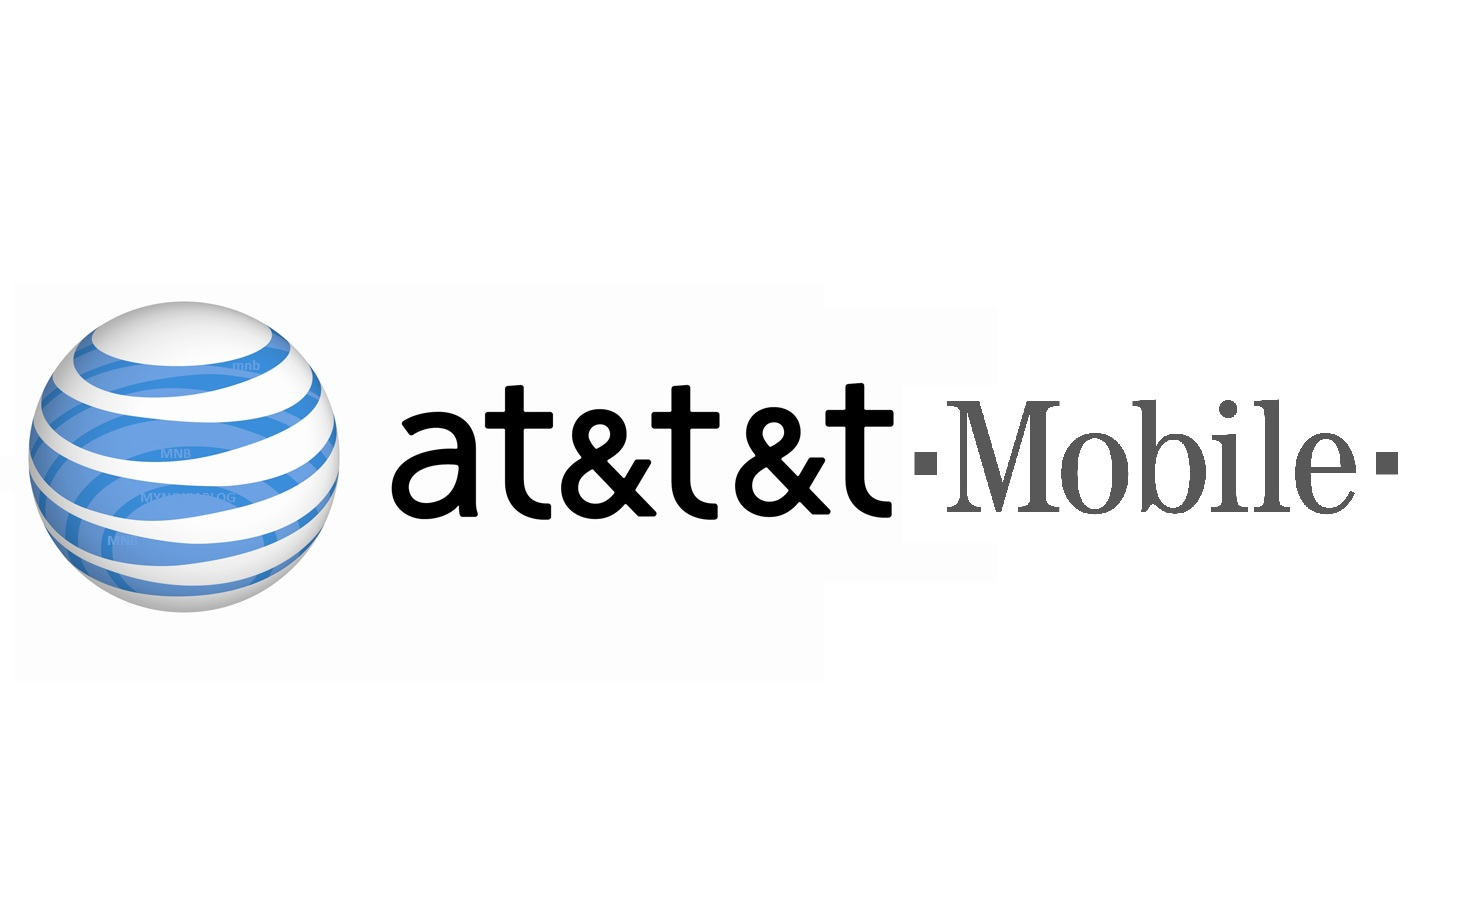 In Event Of Merger With AT&T, T-Mobile Customers Will Keep